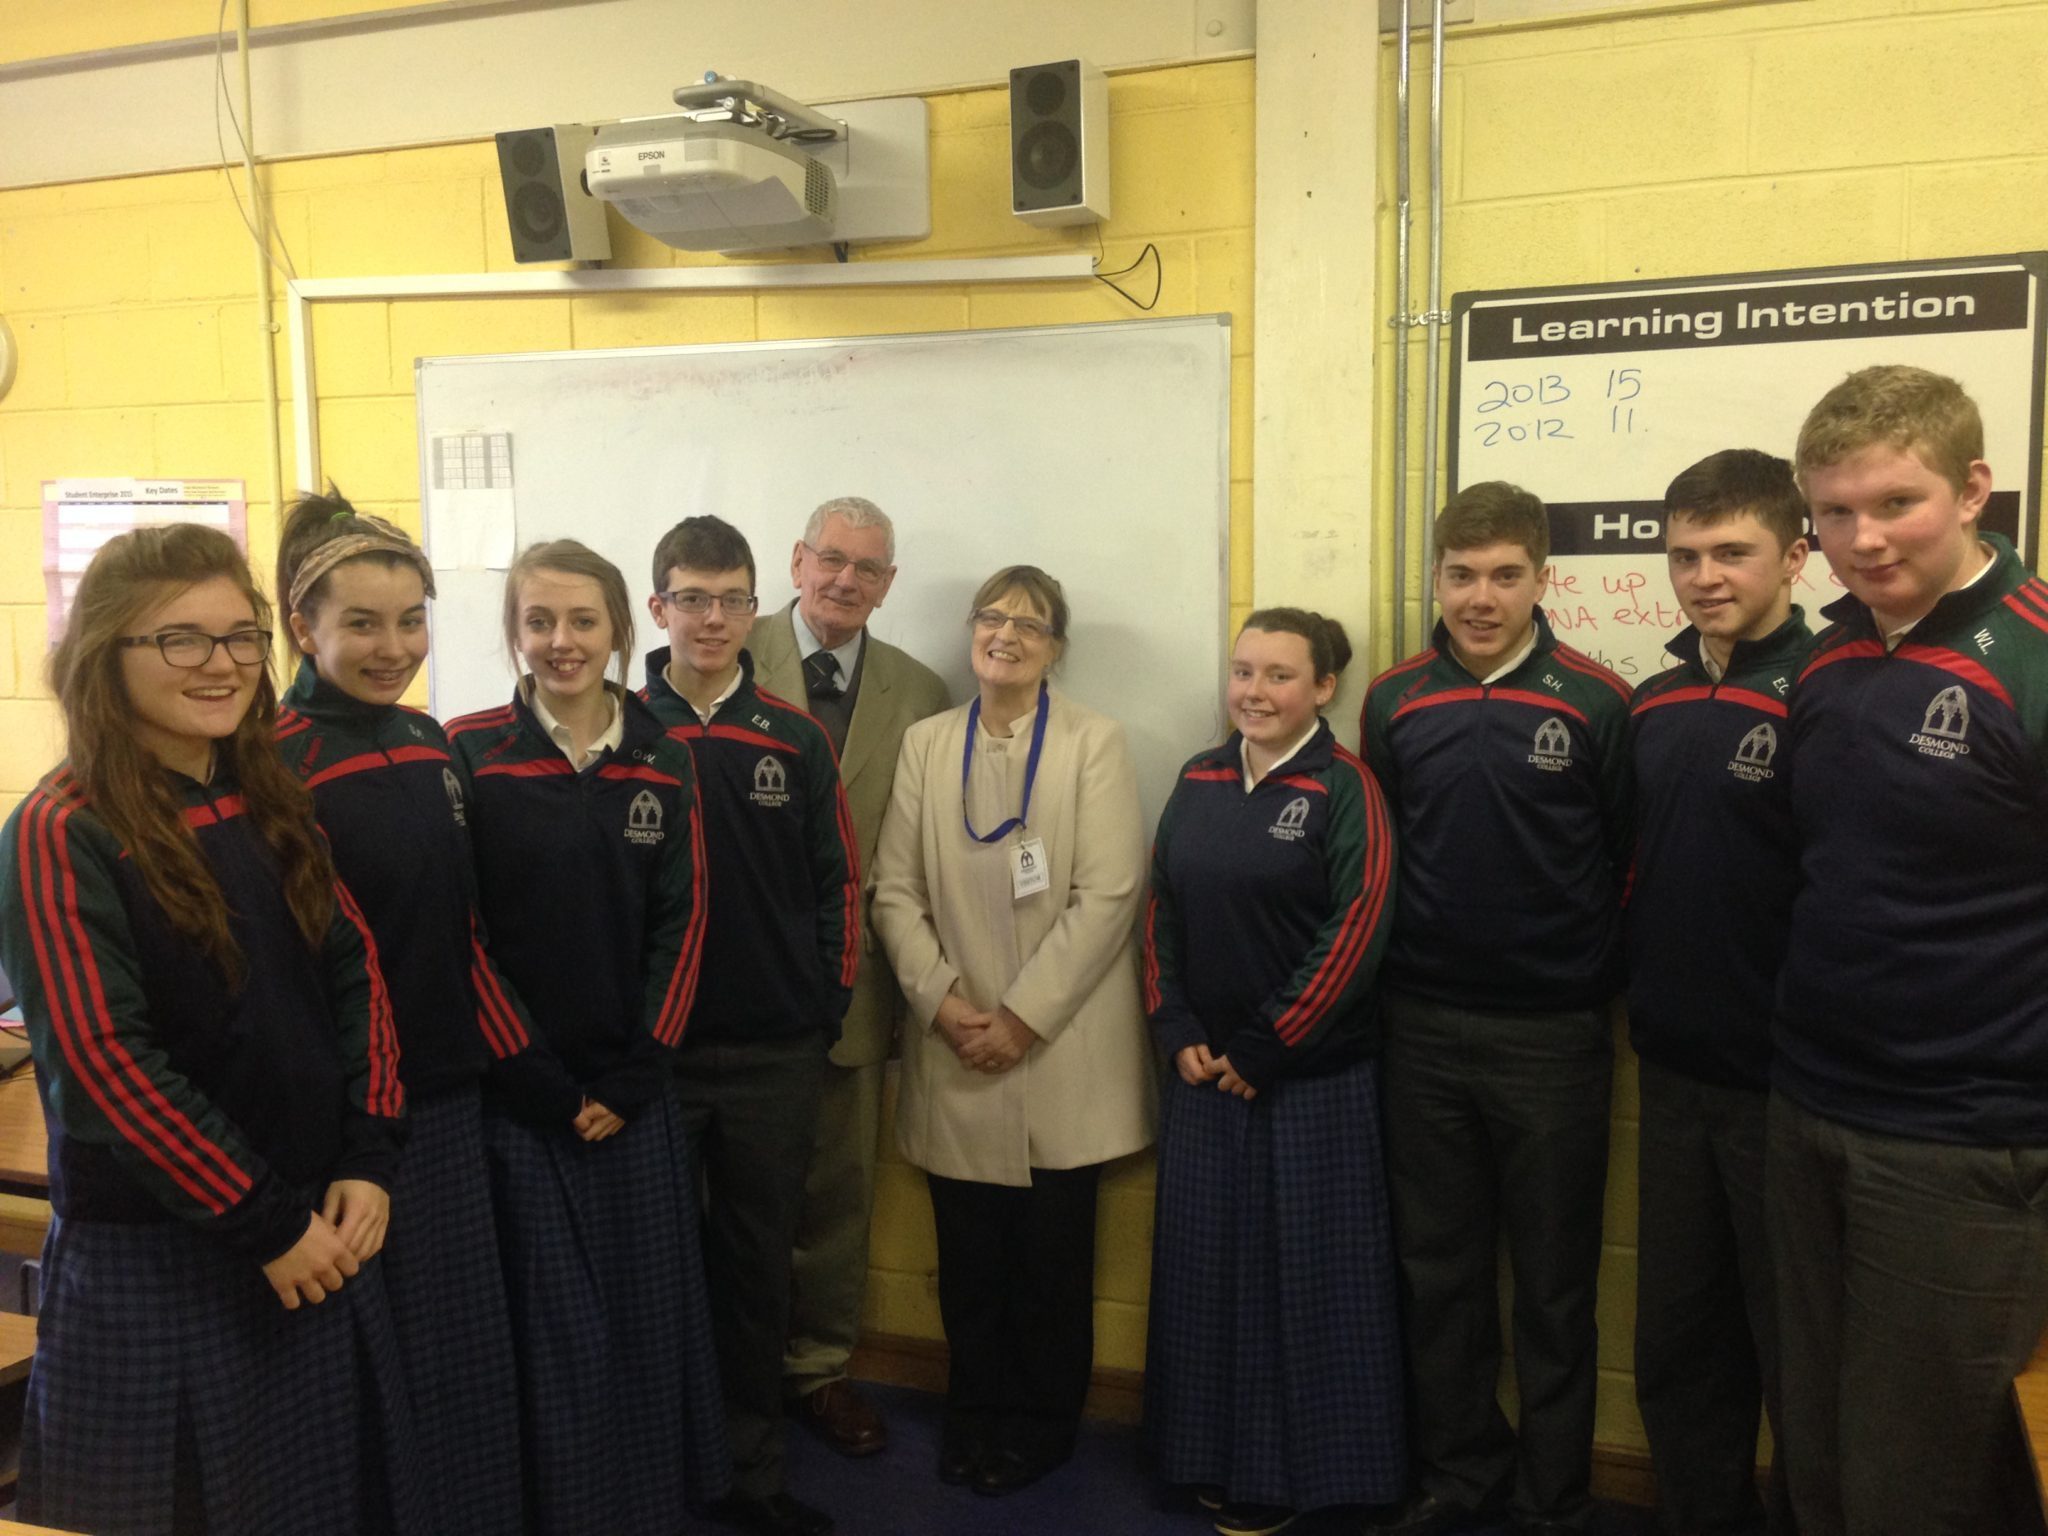 Dr Denis Sexton from the Irish Society for Autism with Claire Mortell, Stacey Flynn, Orla Wren, Eamonn Browne, Patreeze Nugent, Seamus Hurley, Eoin Considine and William Lane, Transition Year students at Desmond College